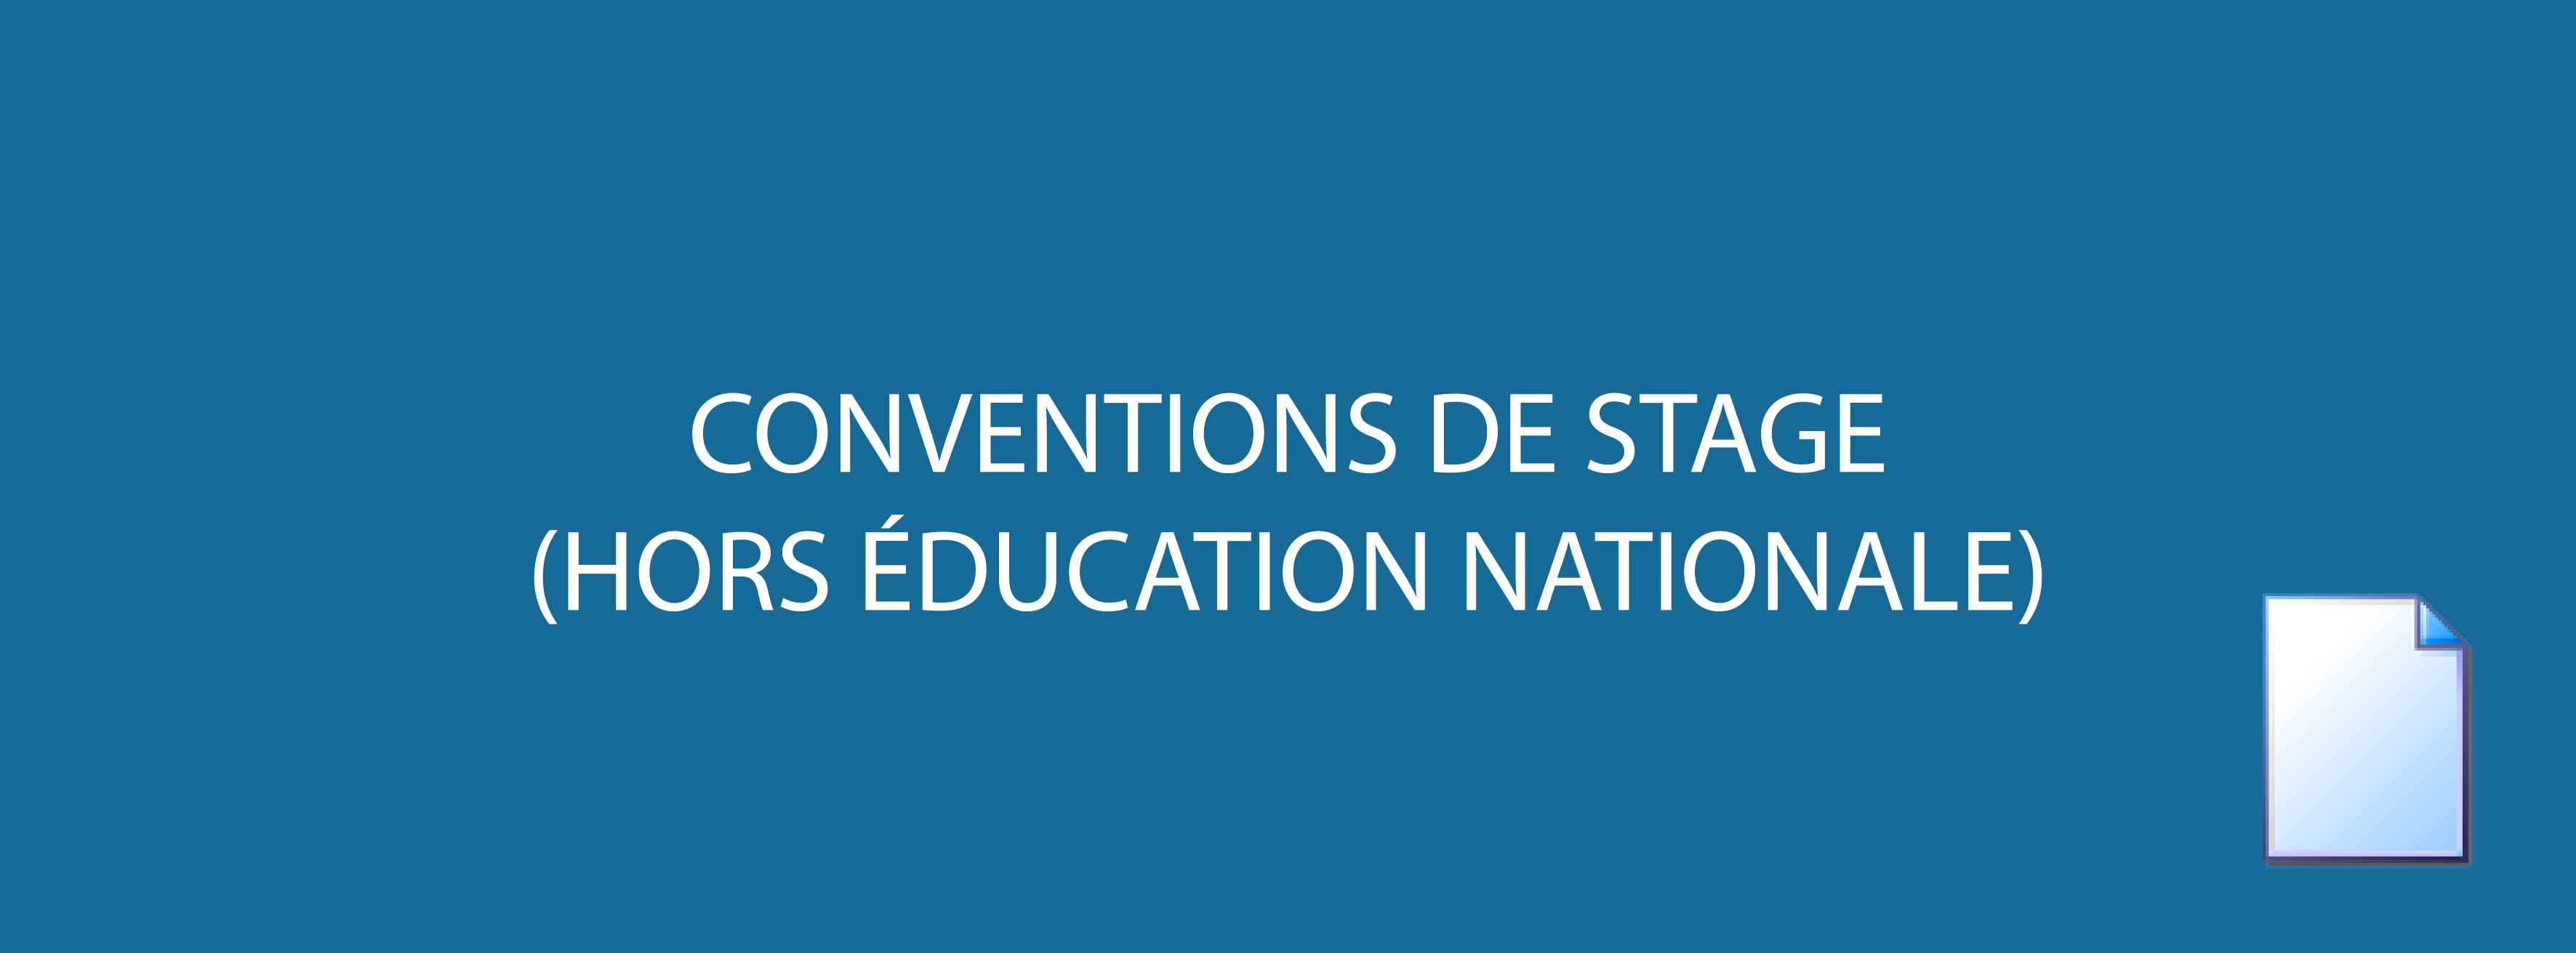 Conventions de stage - Hors Éducation Nationale